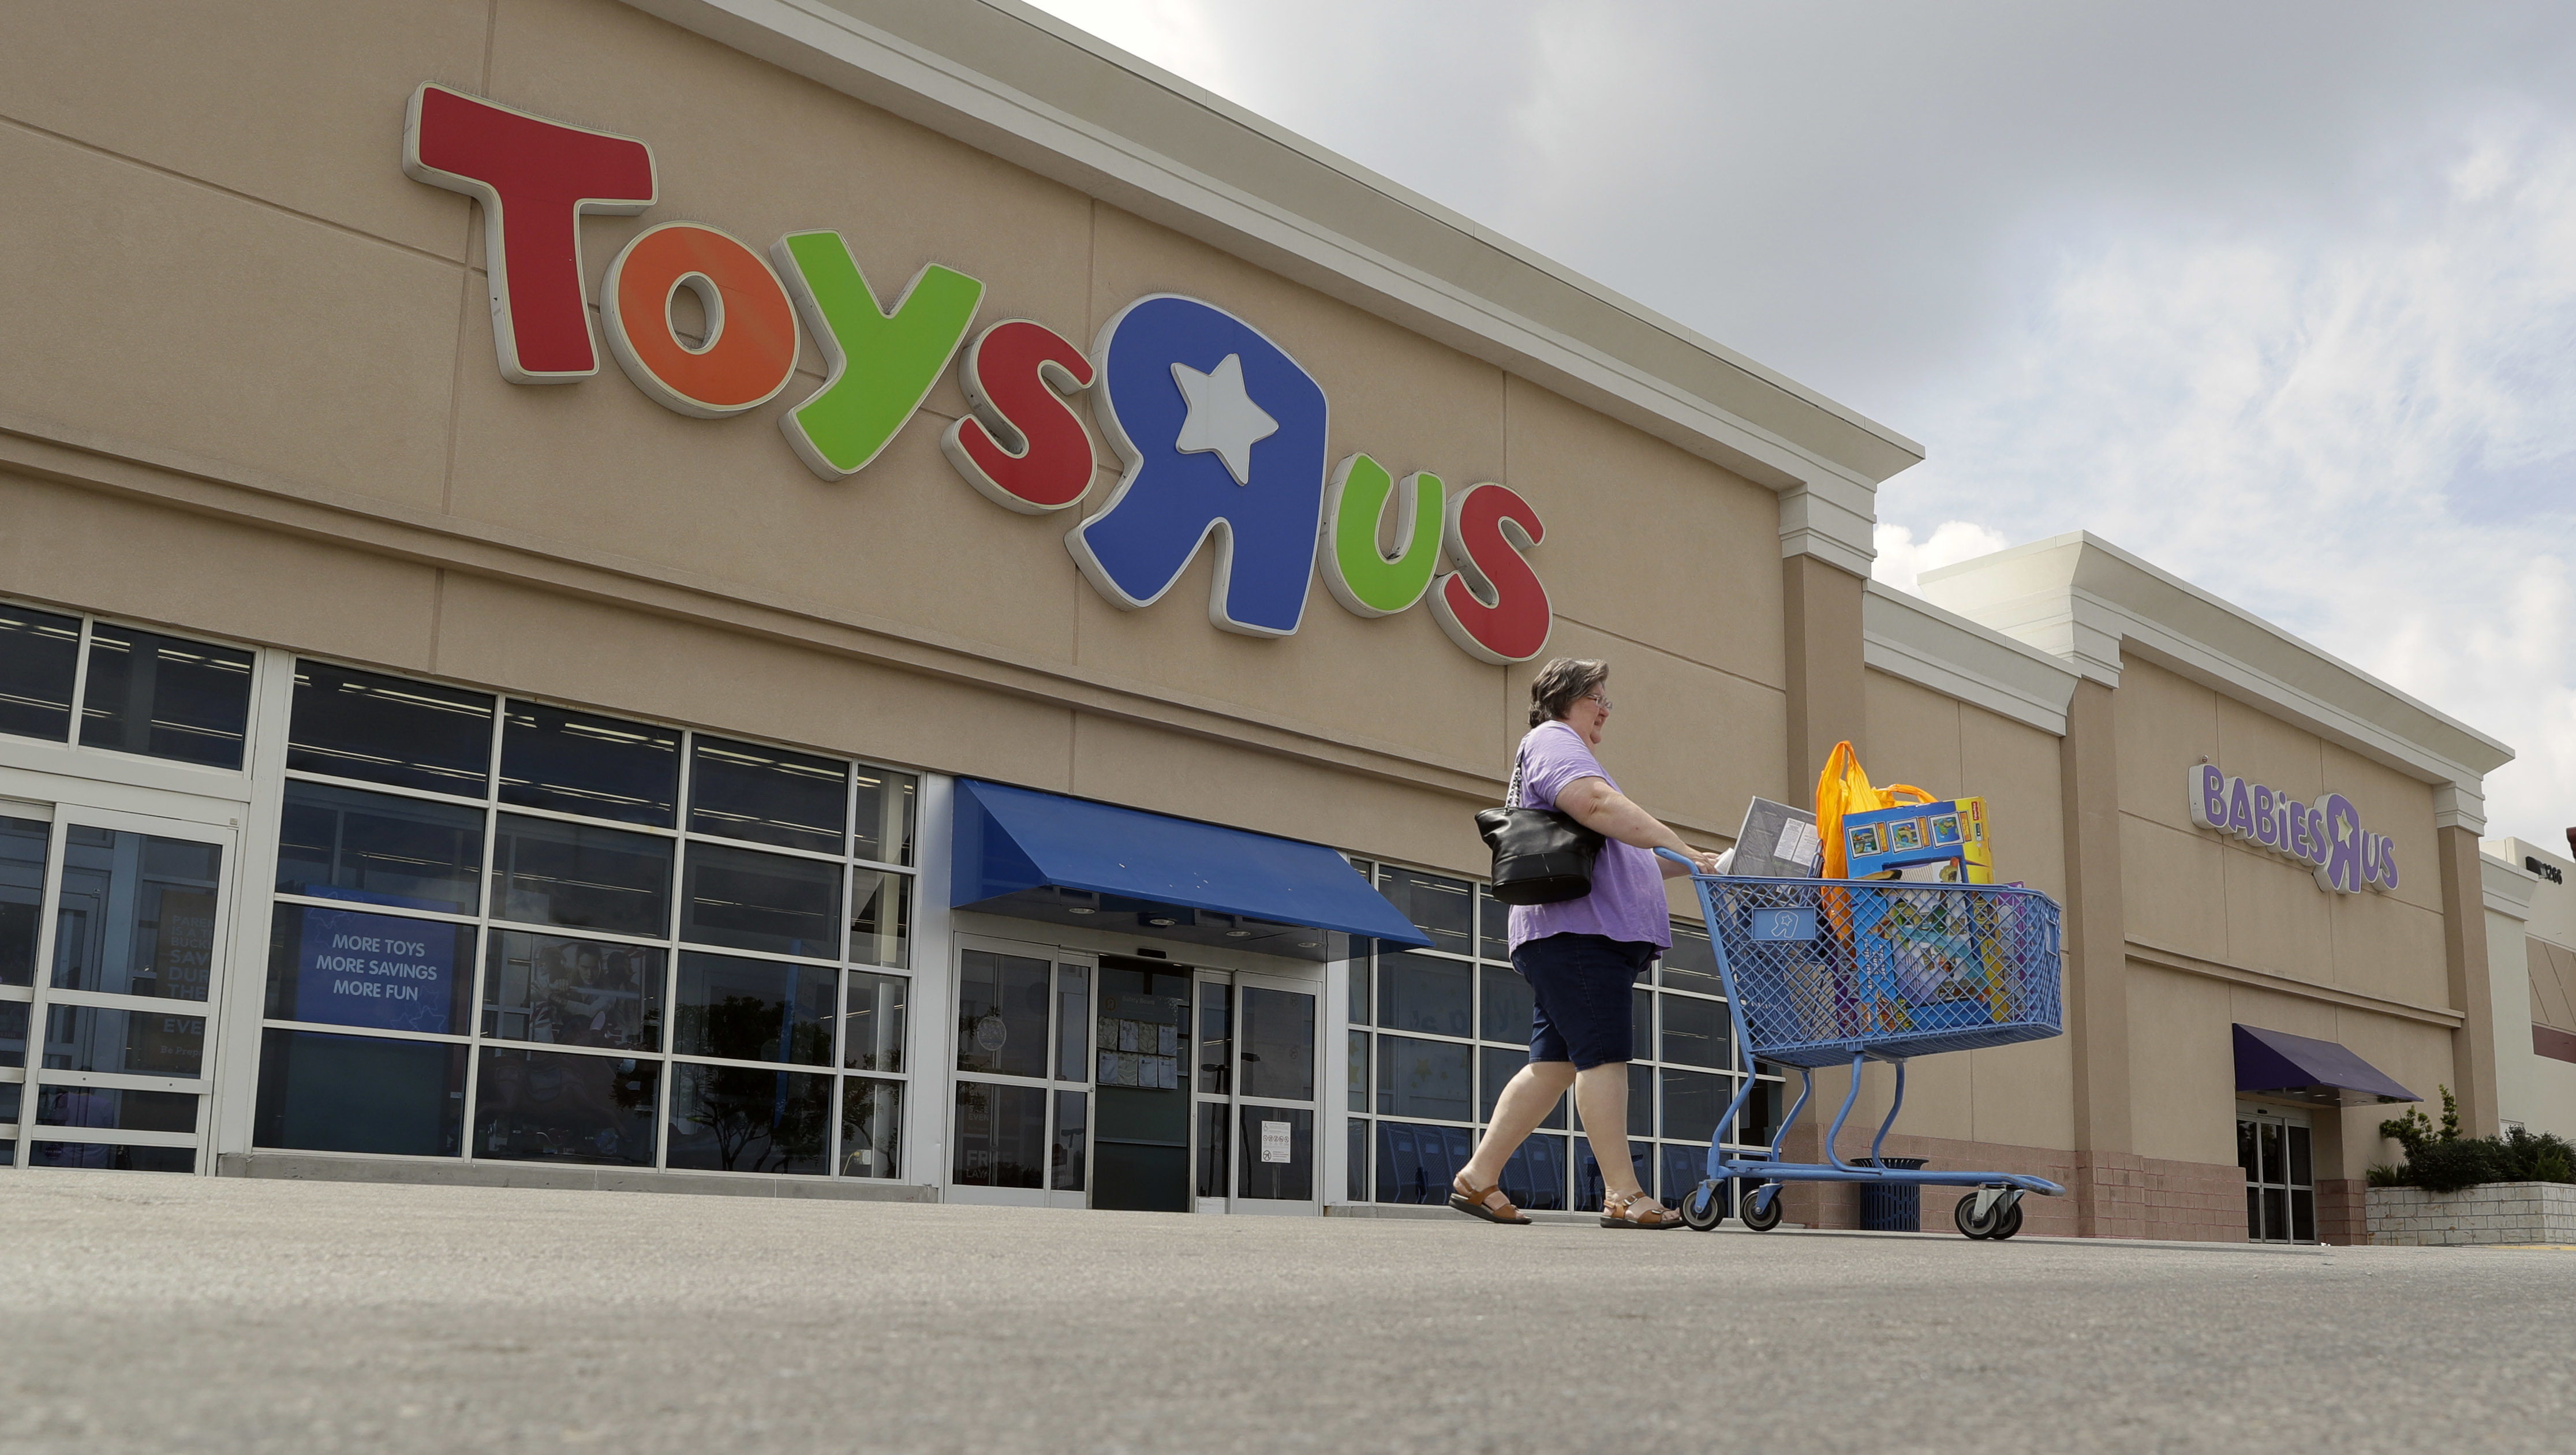 Toys R Us to close all 800 of its U.S. stores - The ...